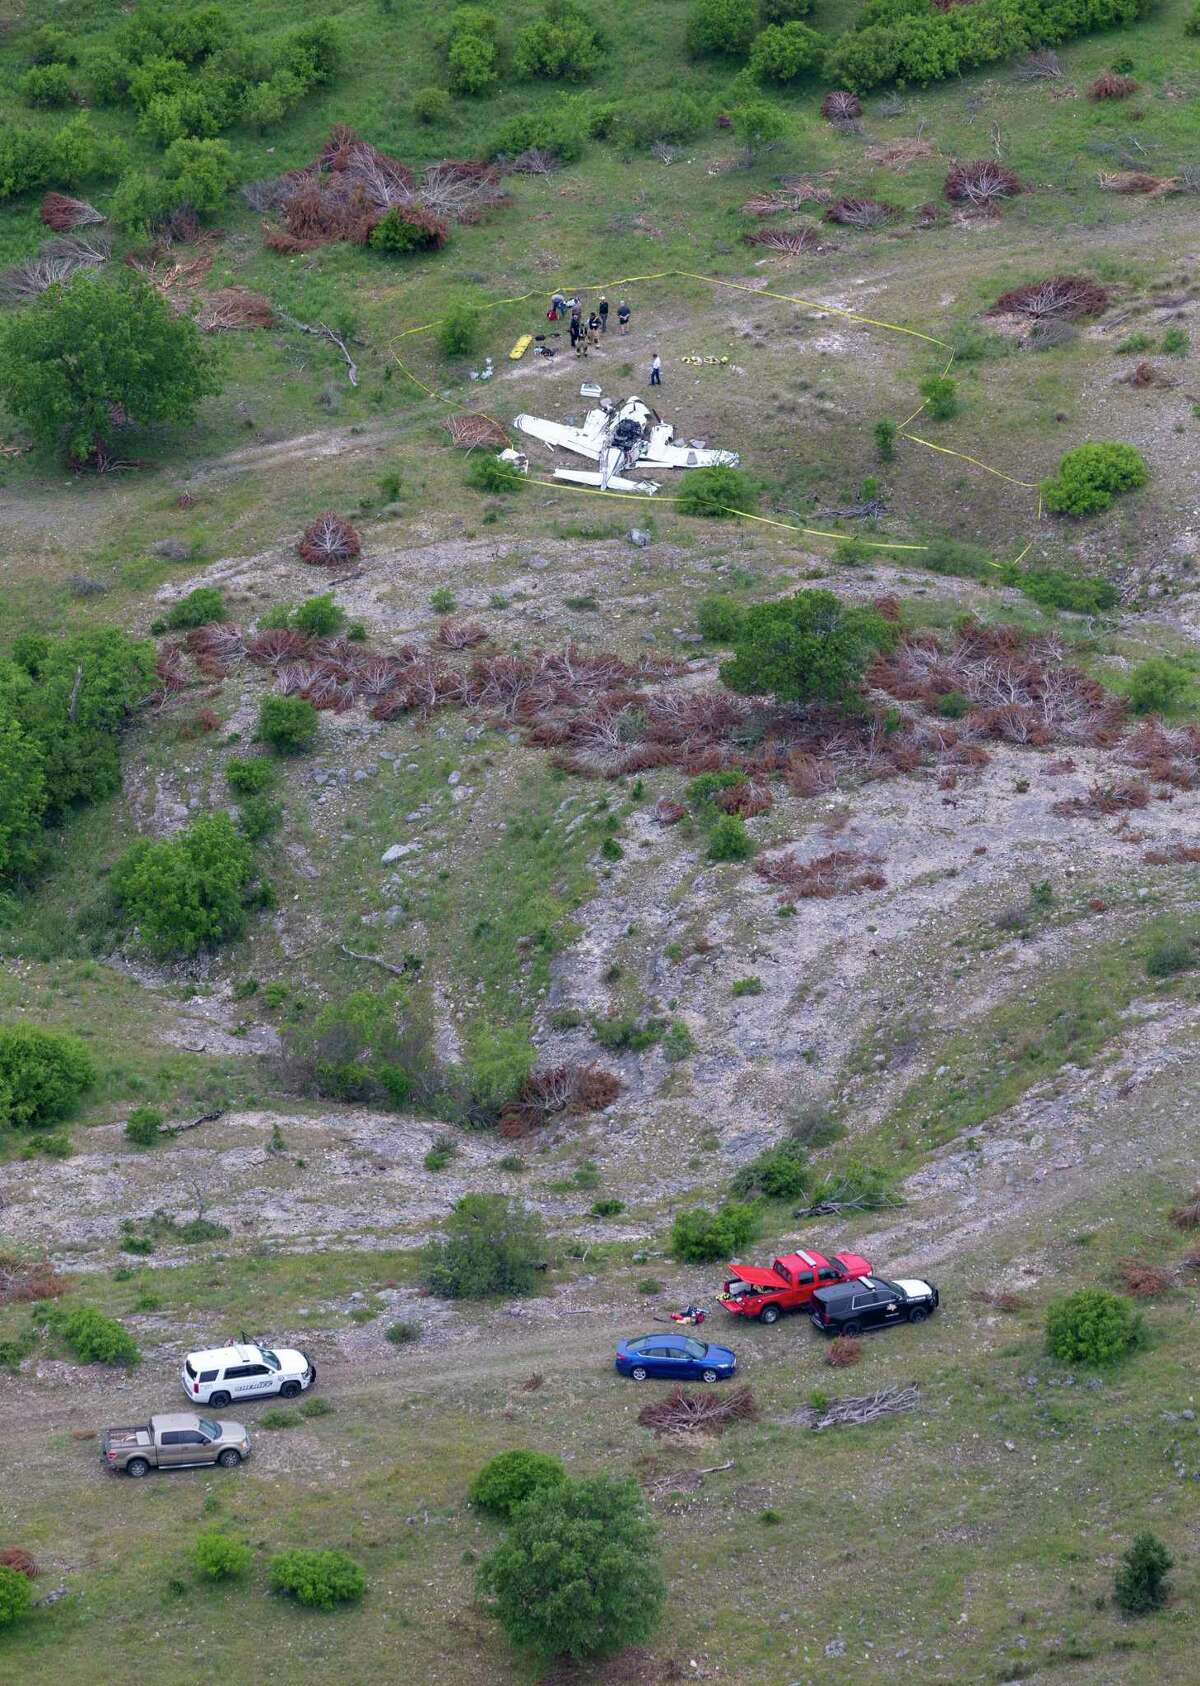 The wreckage of a twin-engine Beechcraft BE58 is seen April 22, 2019 in an aerial image. All six people on the plane were killed in the crash that occurred about 6 mile northwest of the Kerrville Municipal Airport about 9 a.m. Monday.